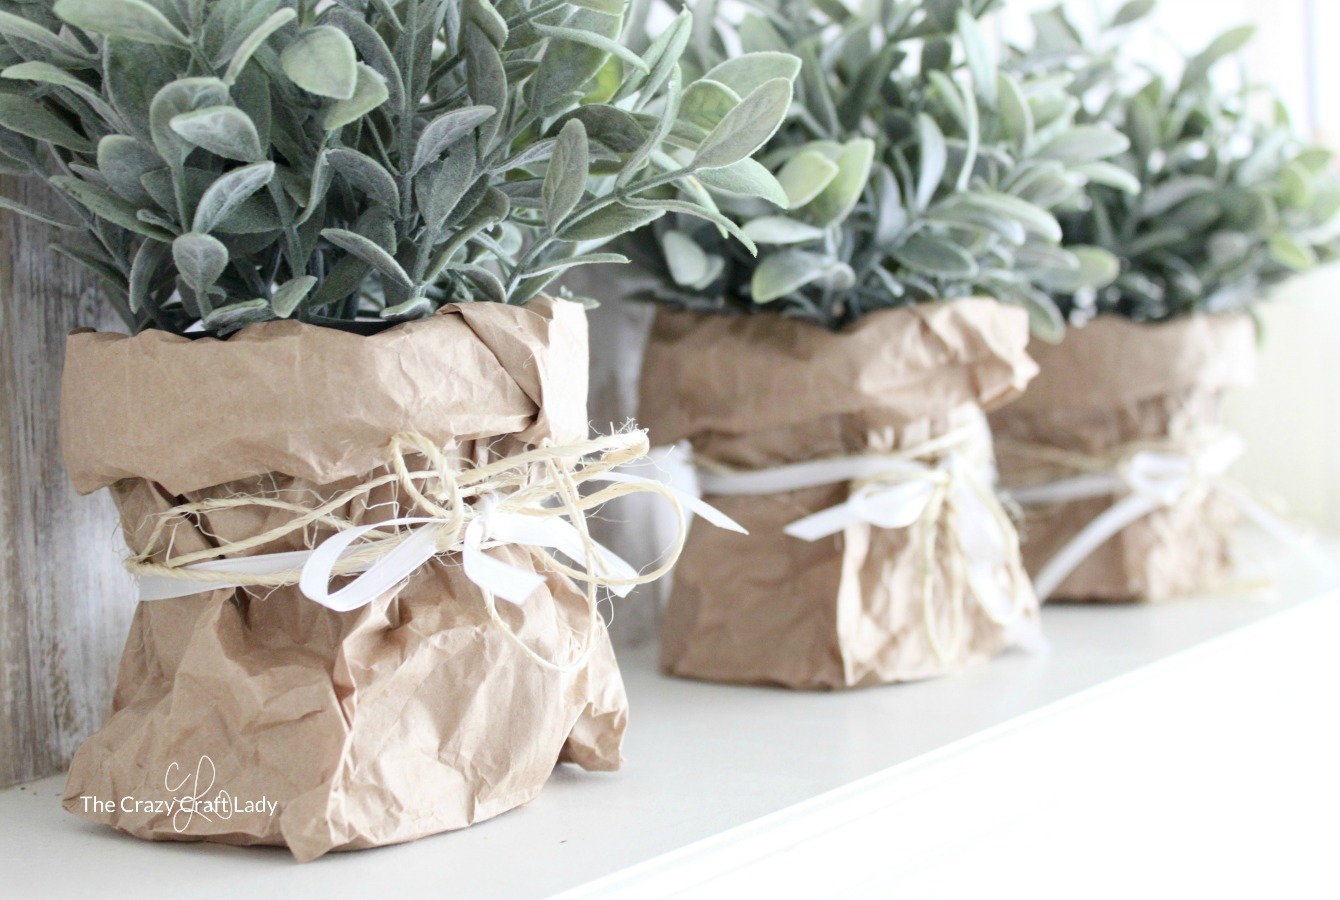 Use a brown bag to make a paper vase for indoor greenery the display indoor greenery in a brown bag paper vase make this farmhouse style plant holder floridaeventfo Gallery